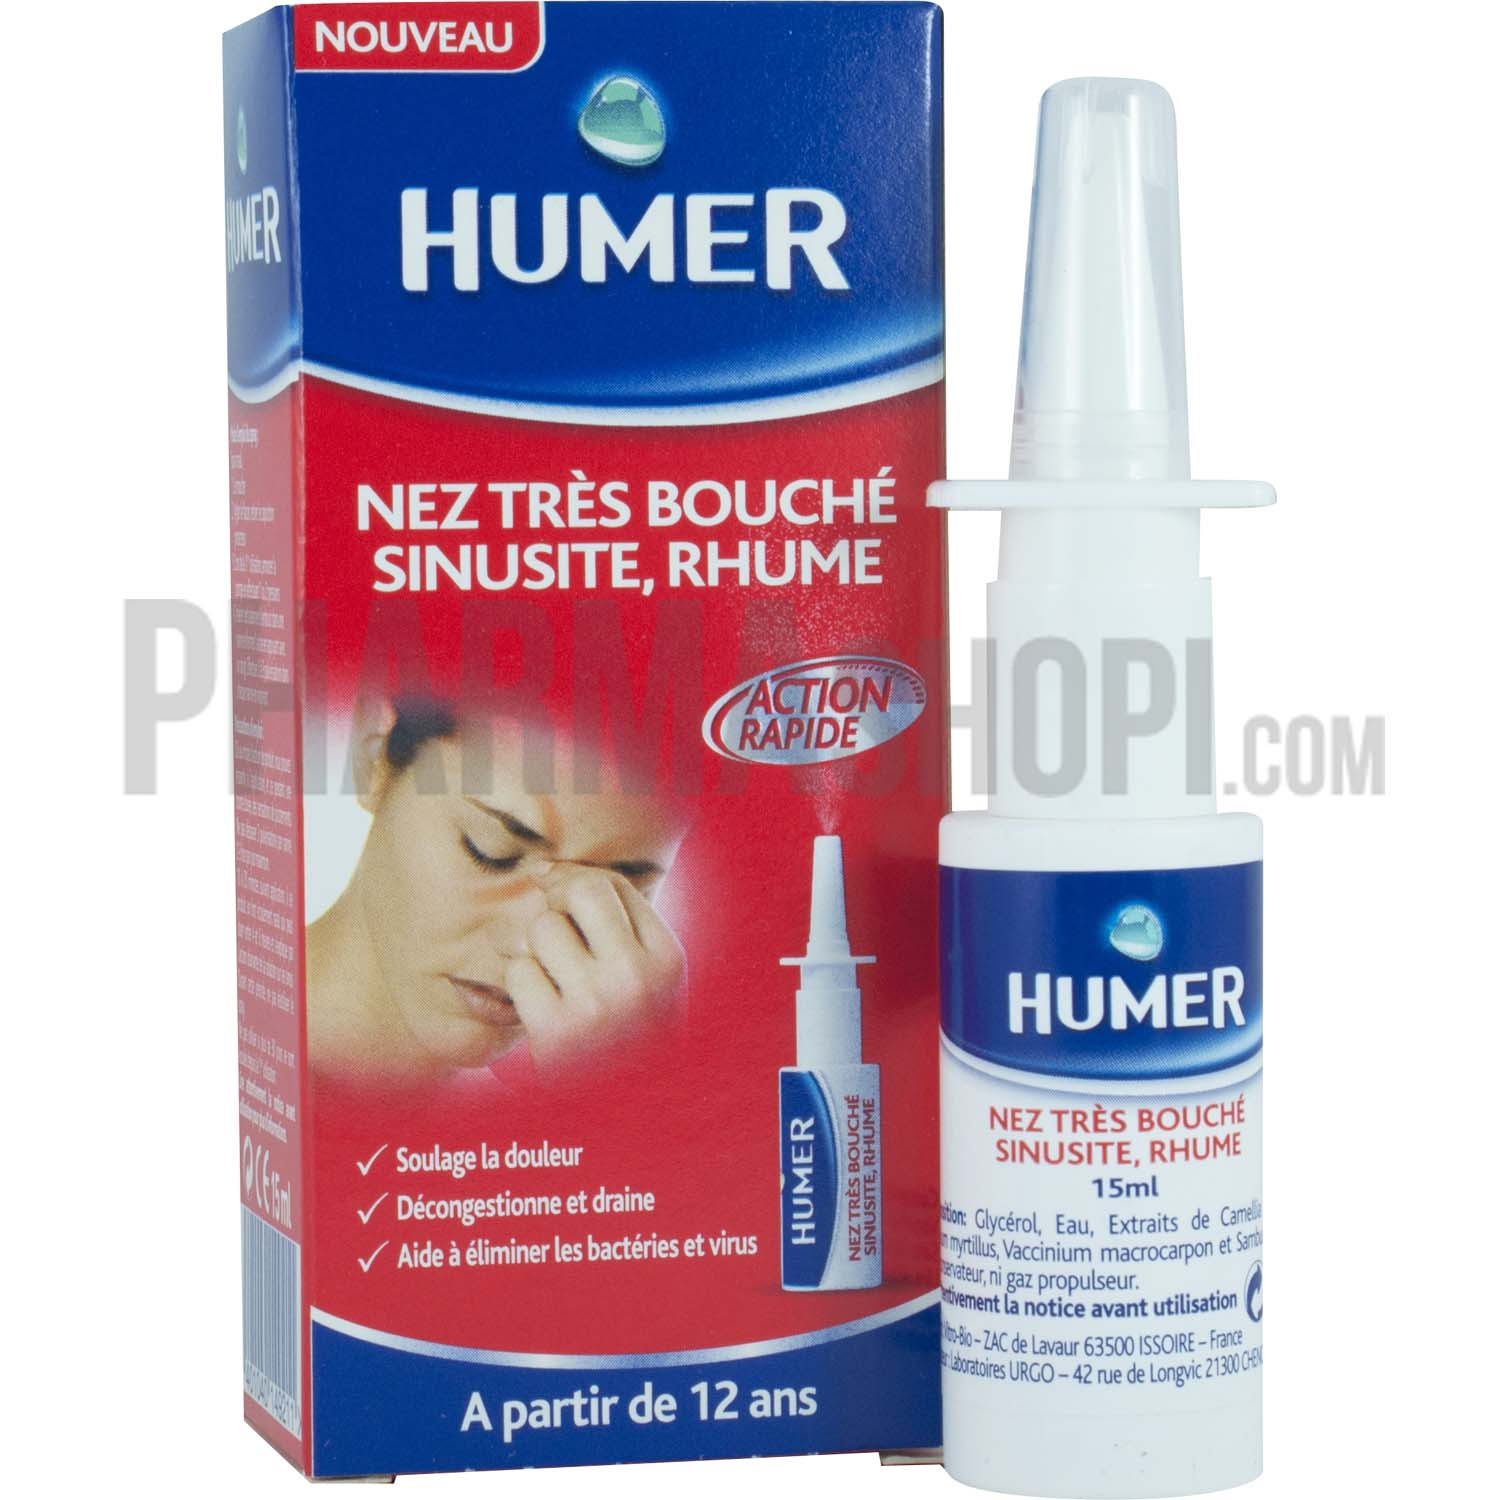 humer nez tr s bouch sinusite rhume spray de 15 ml. Black Bedroom Furniture Sets. Home Design Ideas